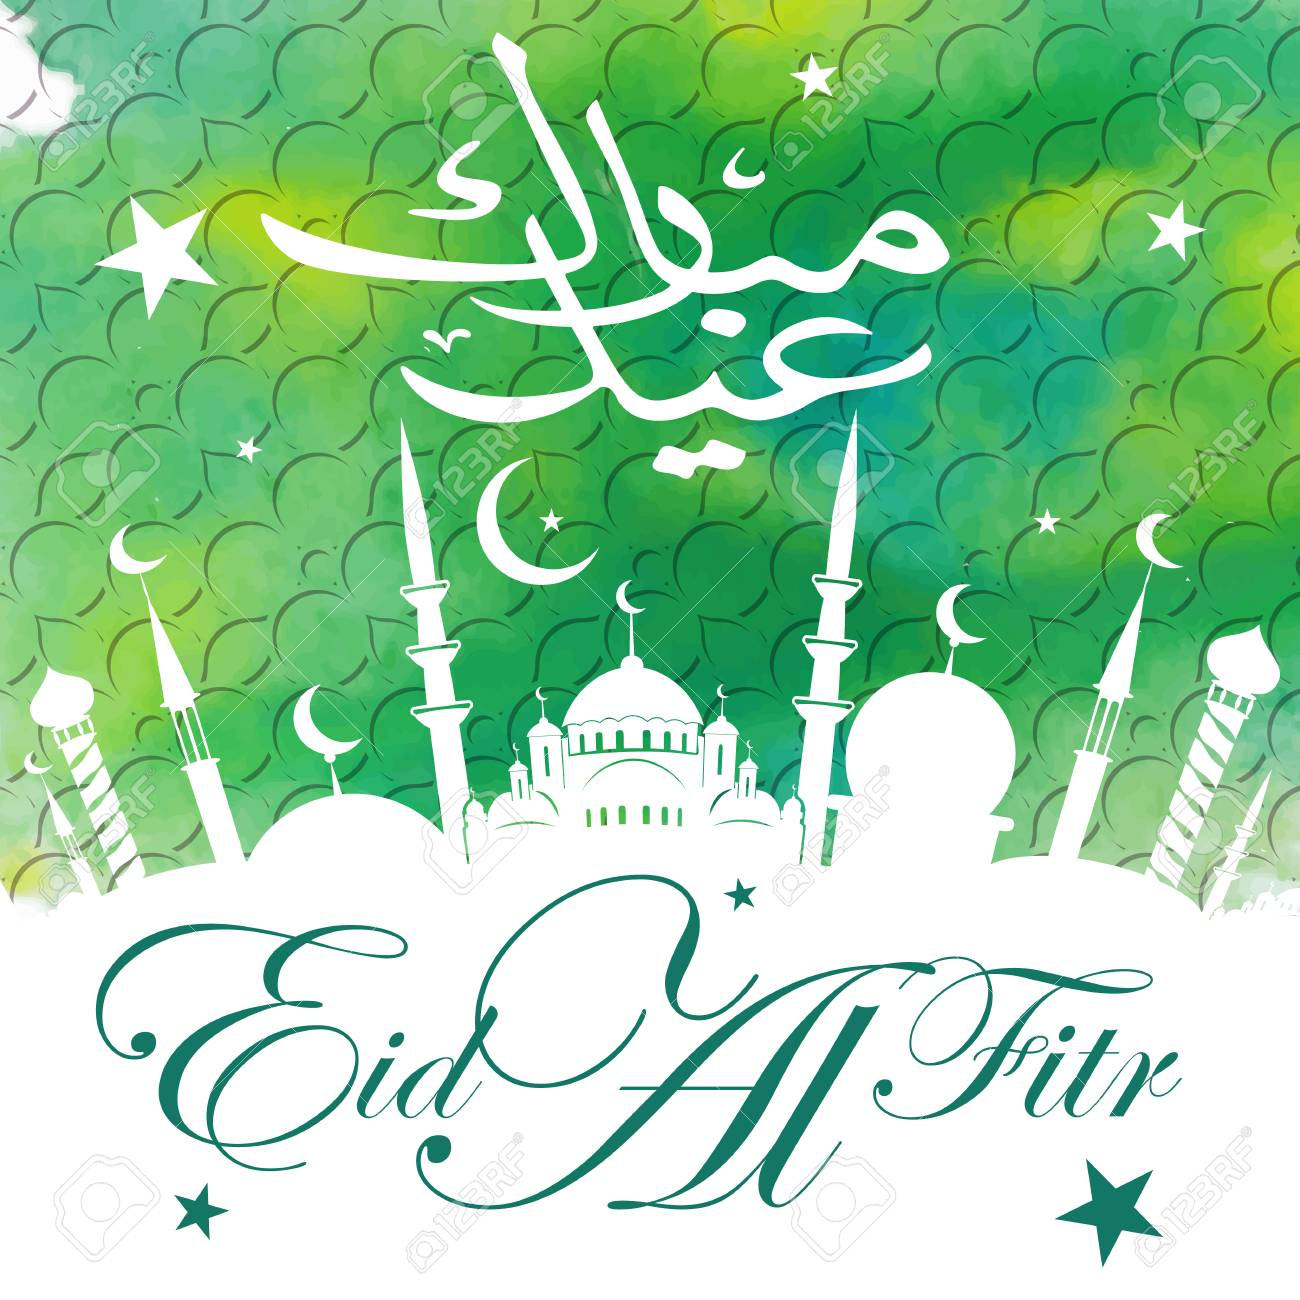 Simple Eid Holiday Eid Al-Fitr Greeting - 78757974-calligraphy-of-arabic-text-eid-al-fitr-feast-of-breaking-the-fast-holiday-greeting-card-in-retro-sty  Perfect Image Reference_324612 .jpg